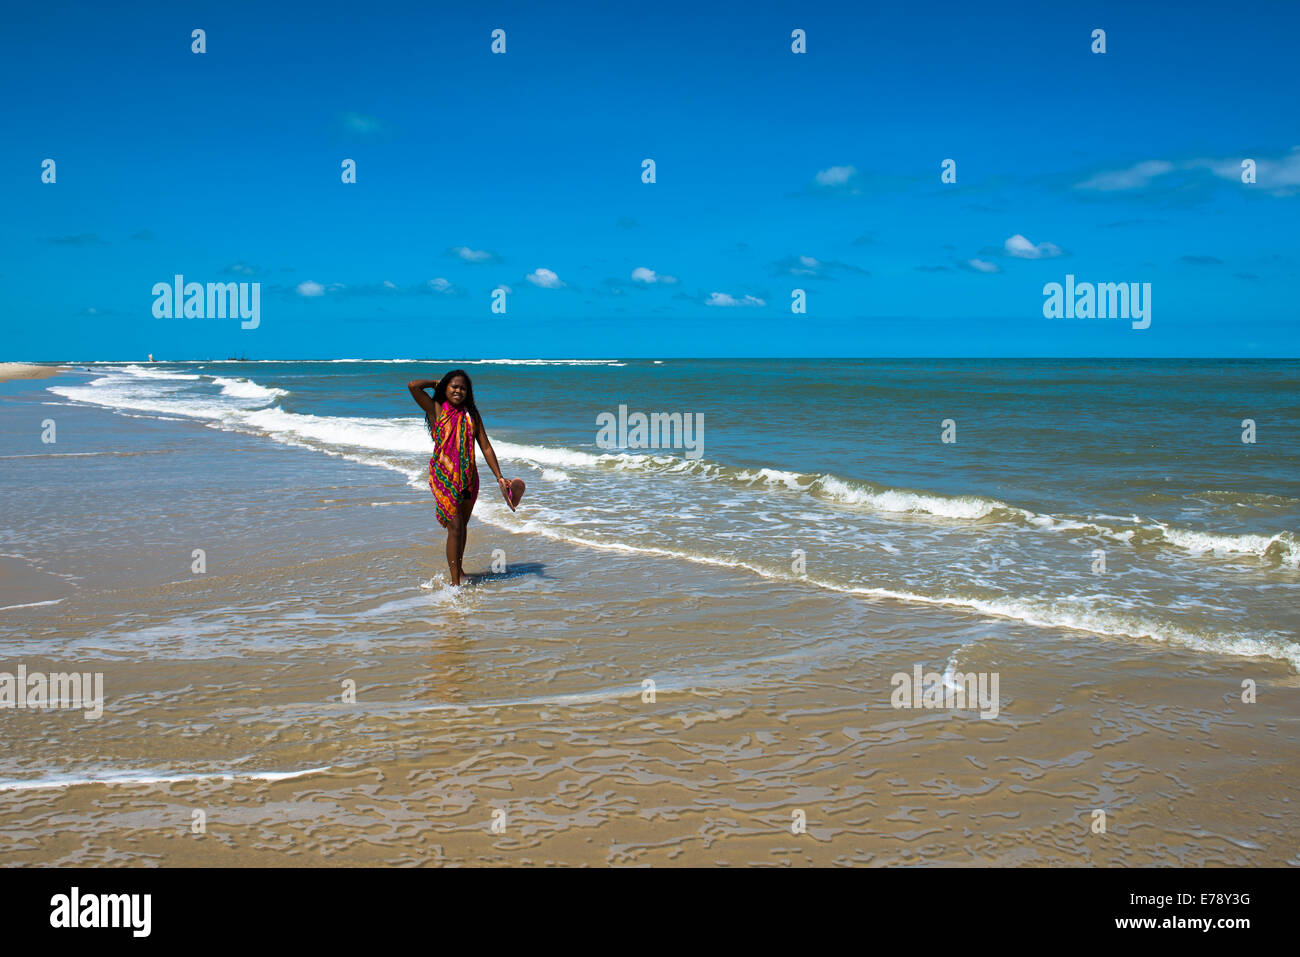 A Malagasy beauty walking on the beach in Morondava, Madagascar. - Stock Image